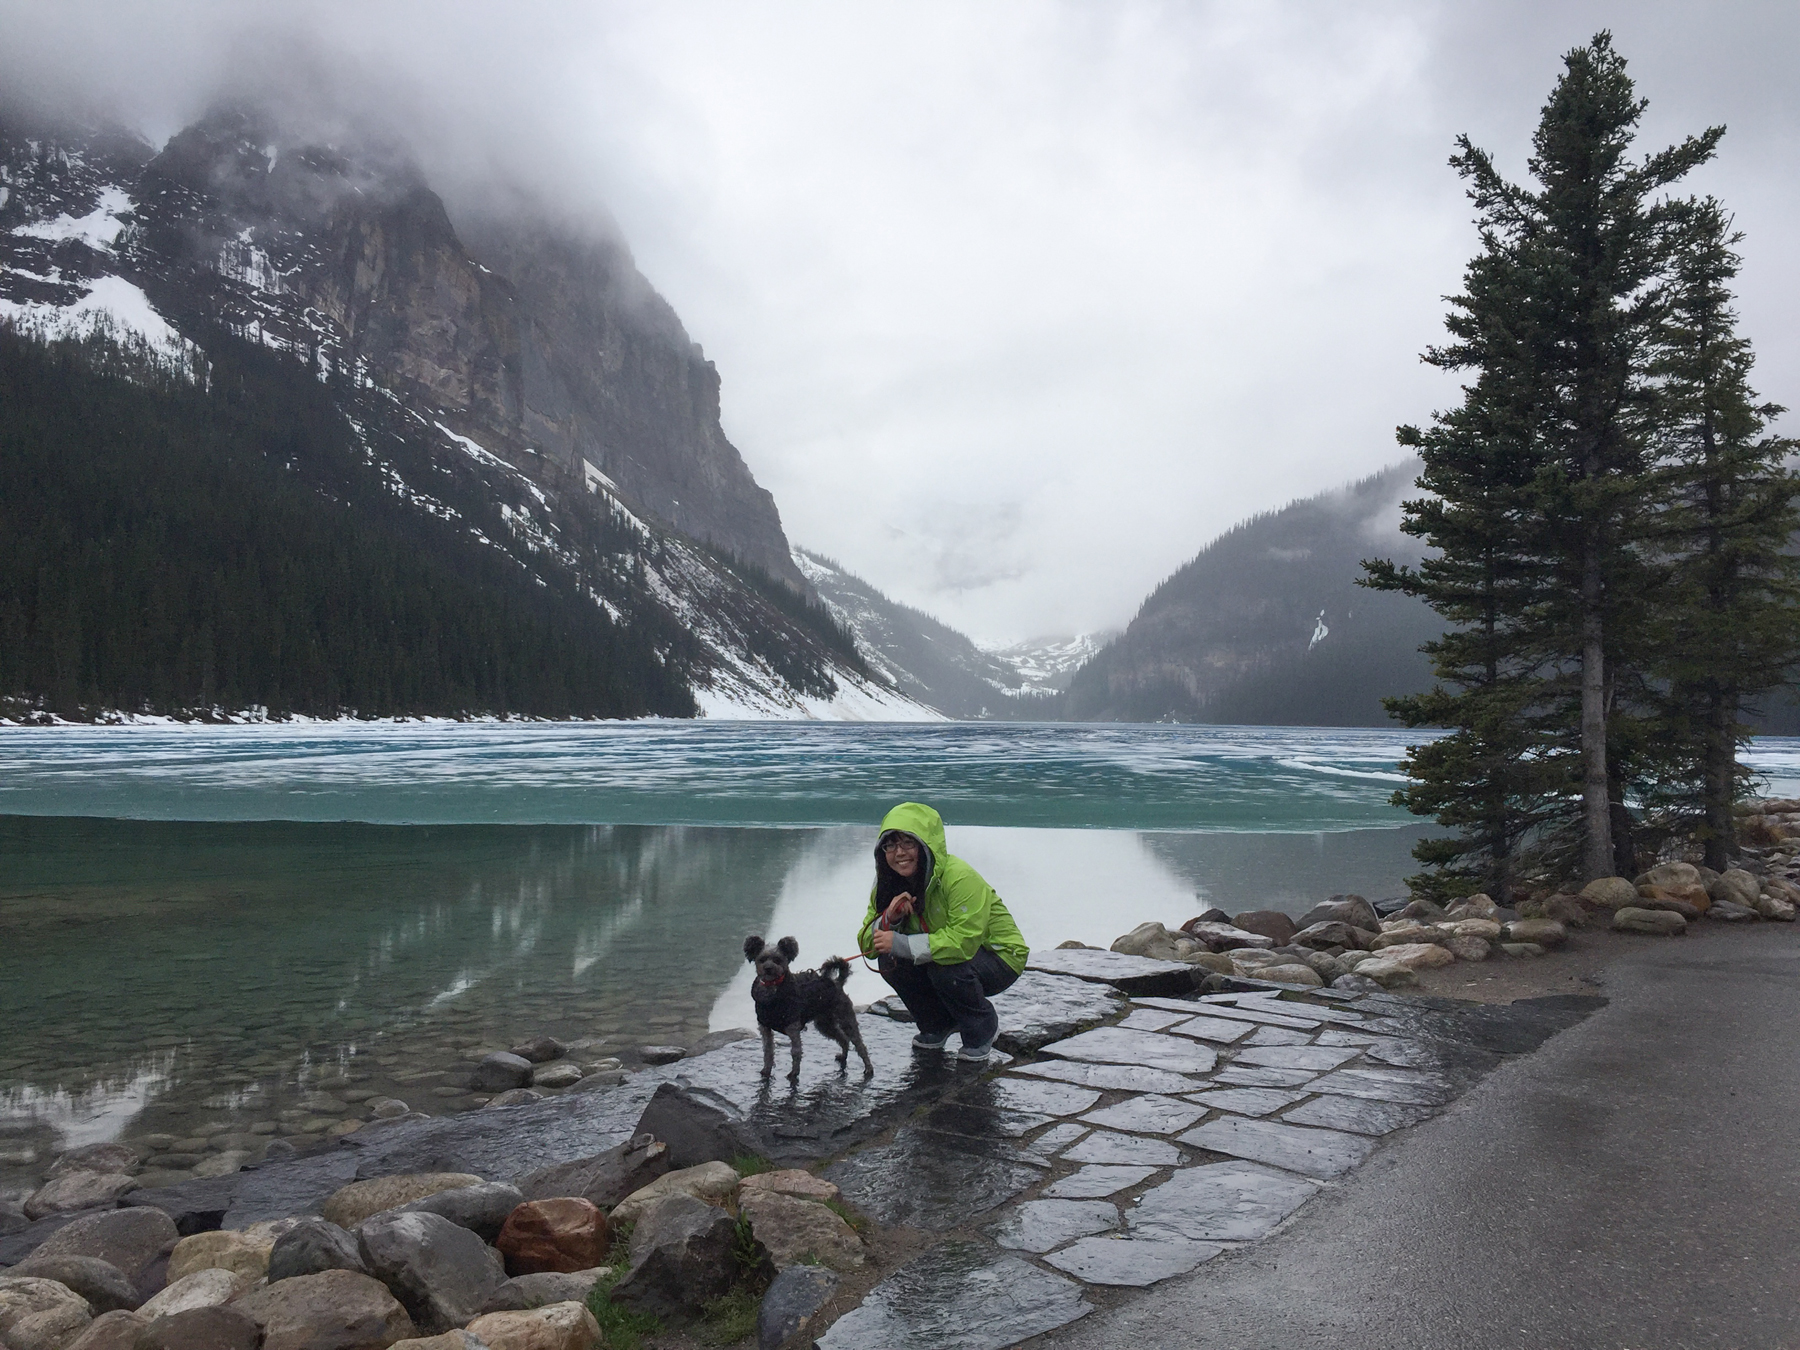 Because of raining, we decided to go visit Lake Louise instead of somewhere new. I've seen Lake Louise covered with snow but I had never seen half frozen which was pretty cool.